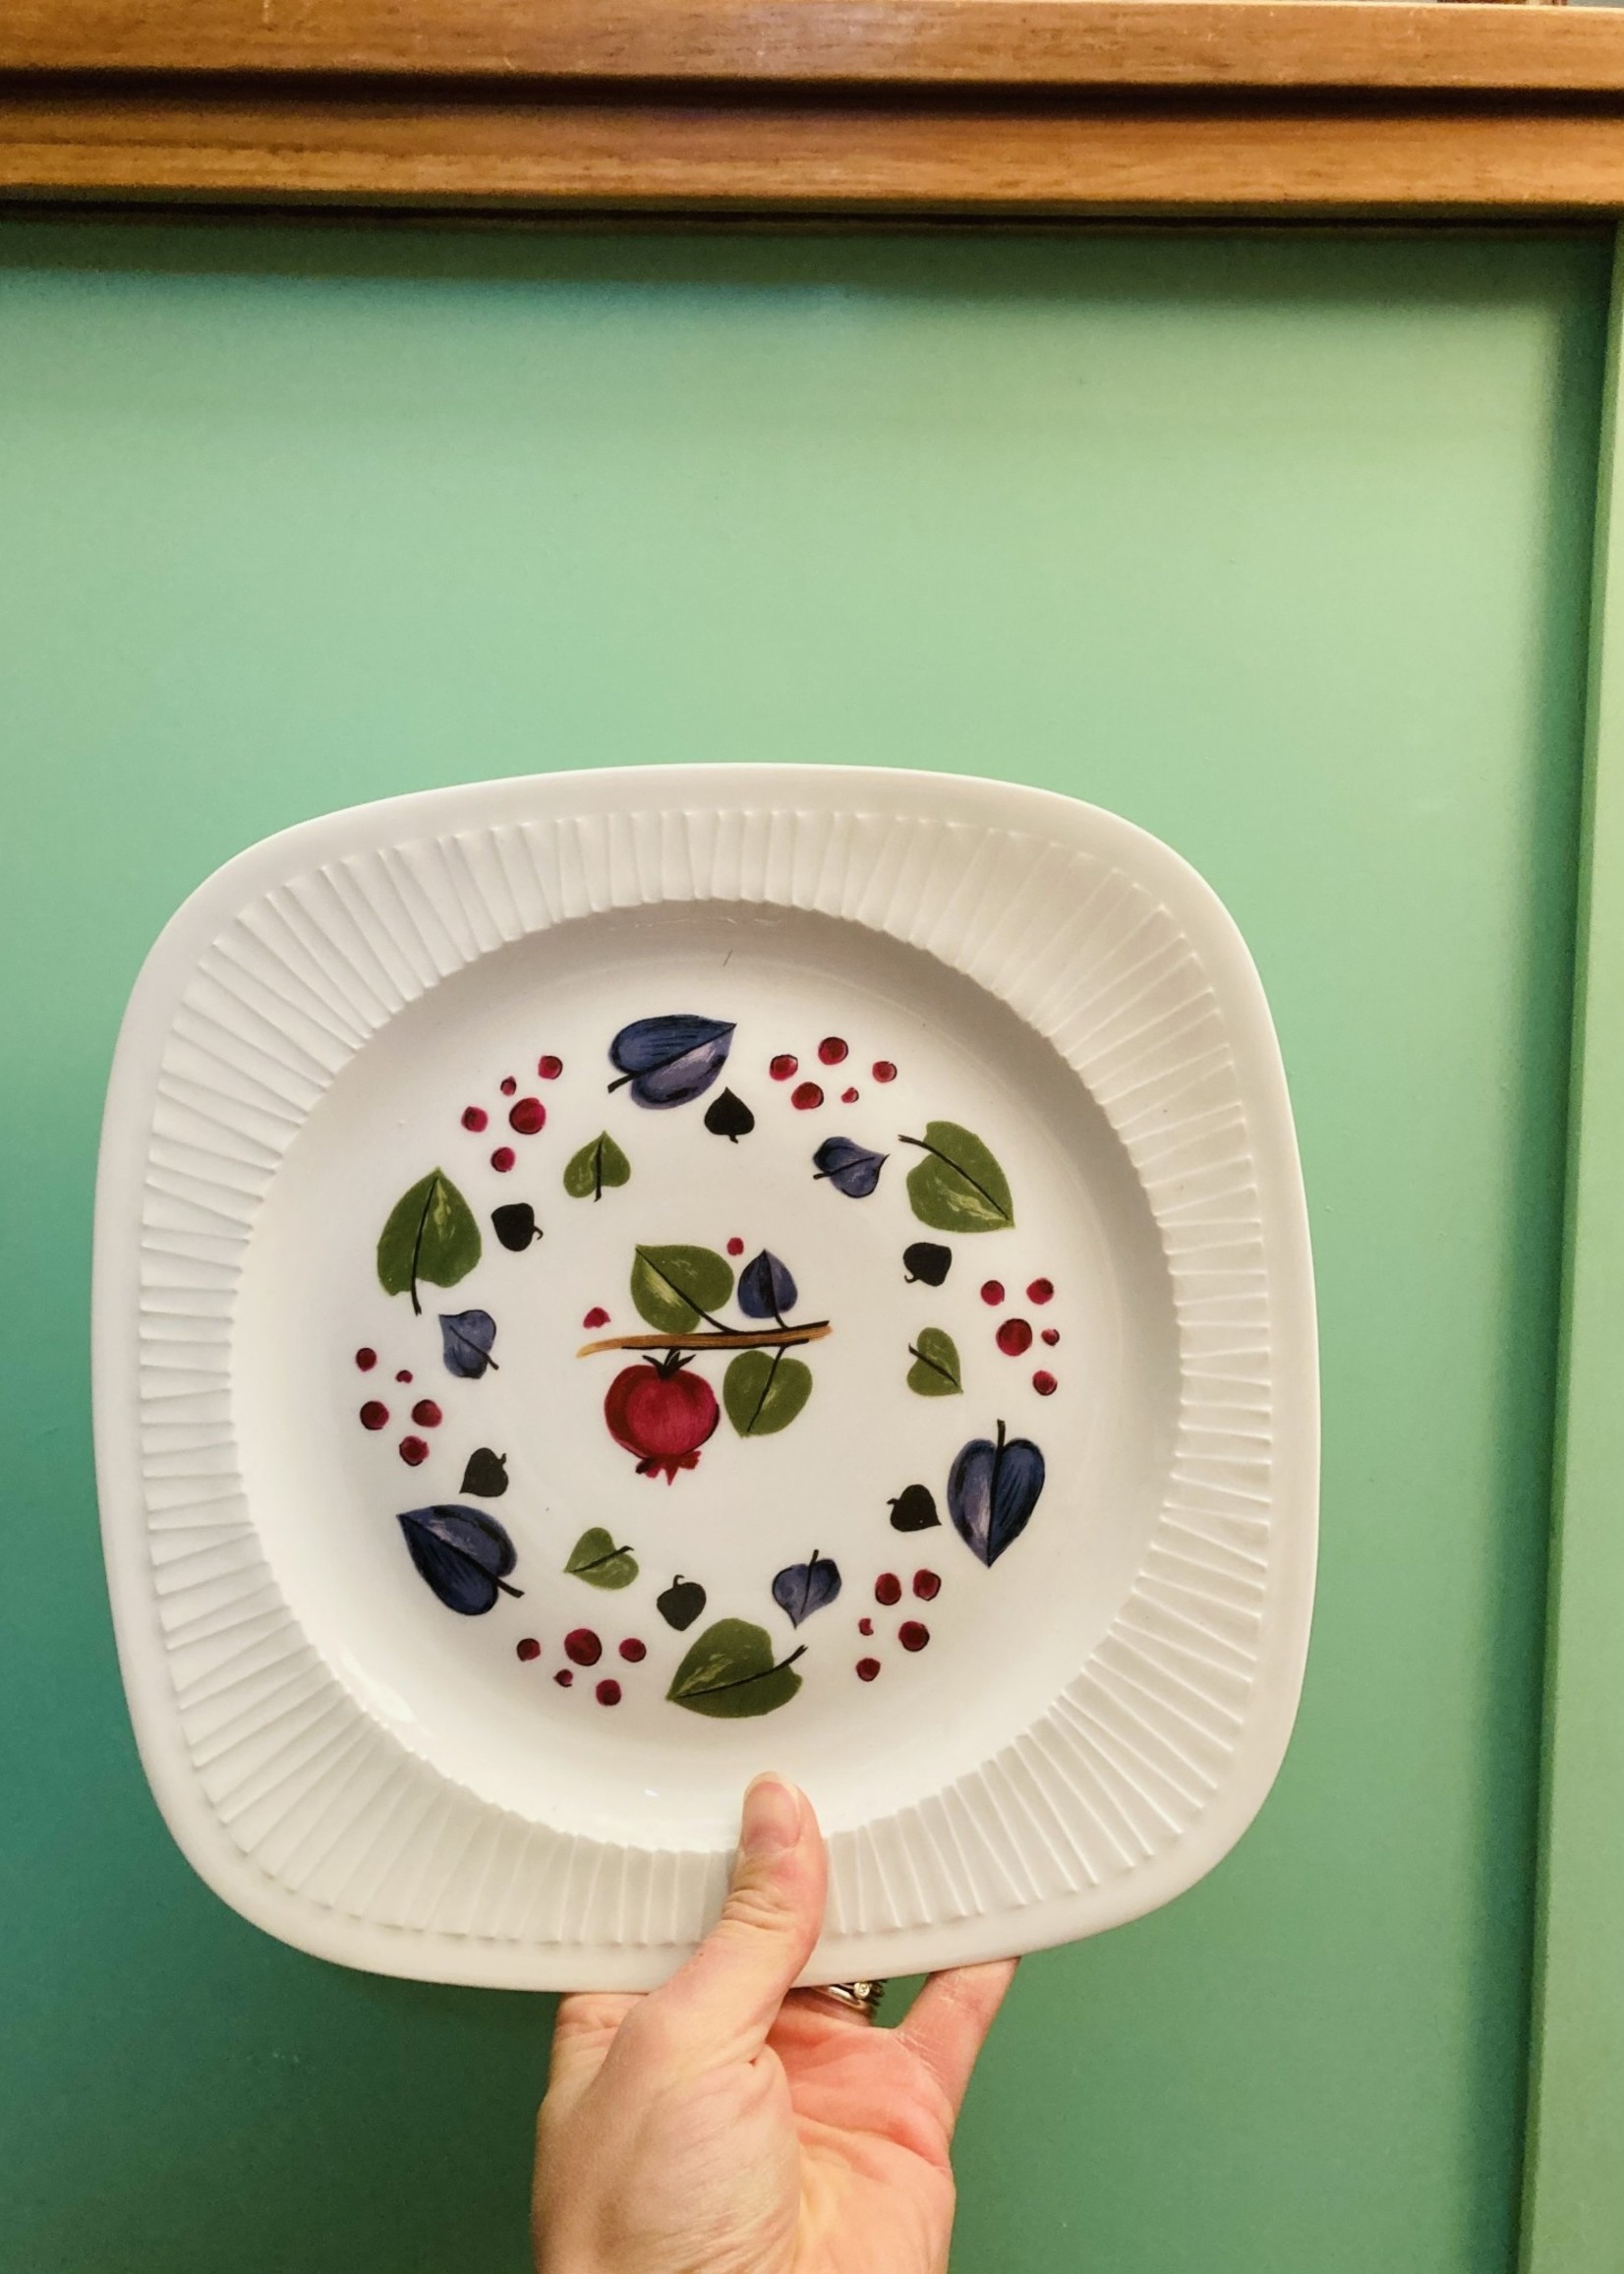 Small plates in Limoges Porcelain decor Haveland